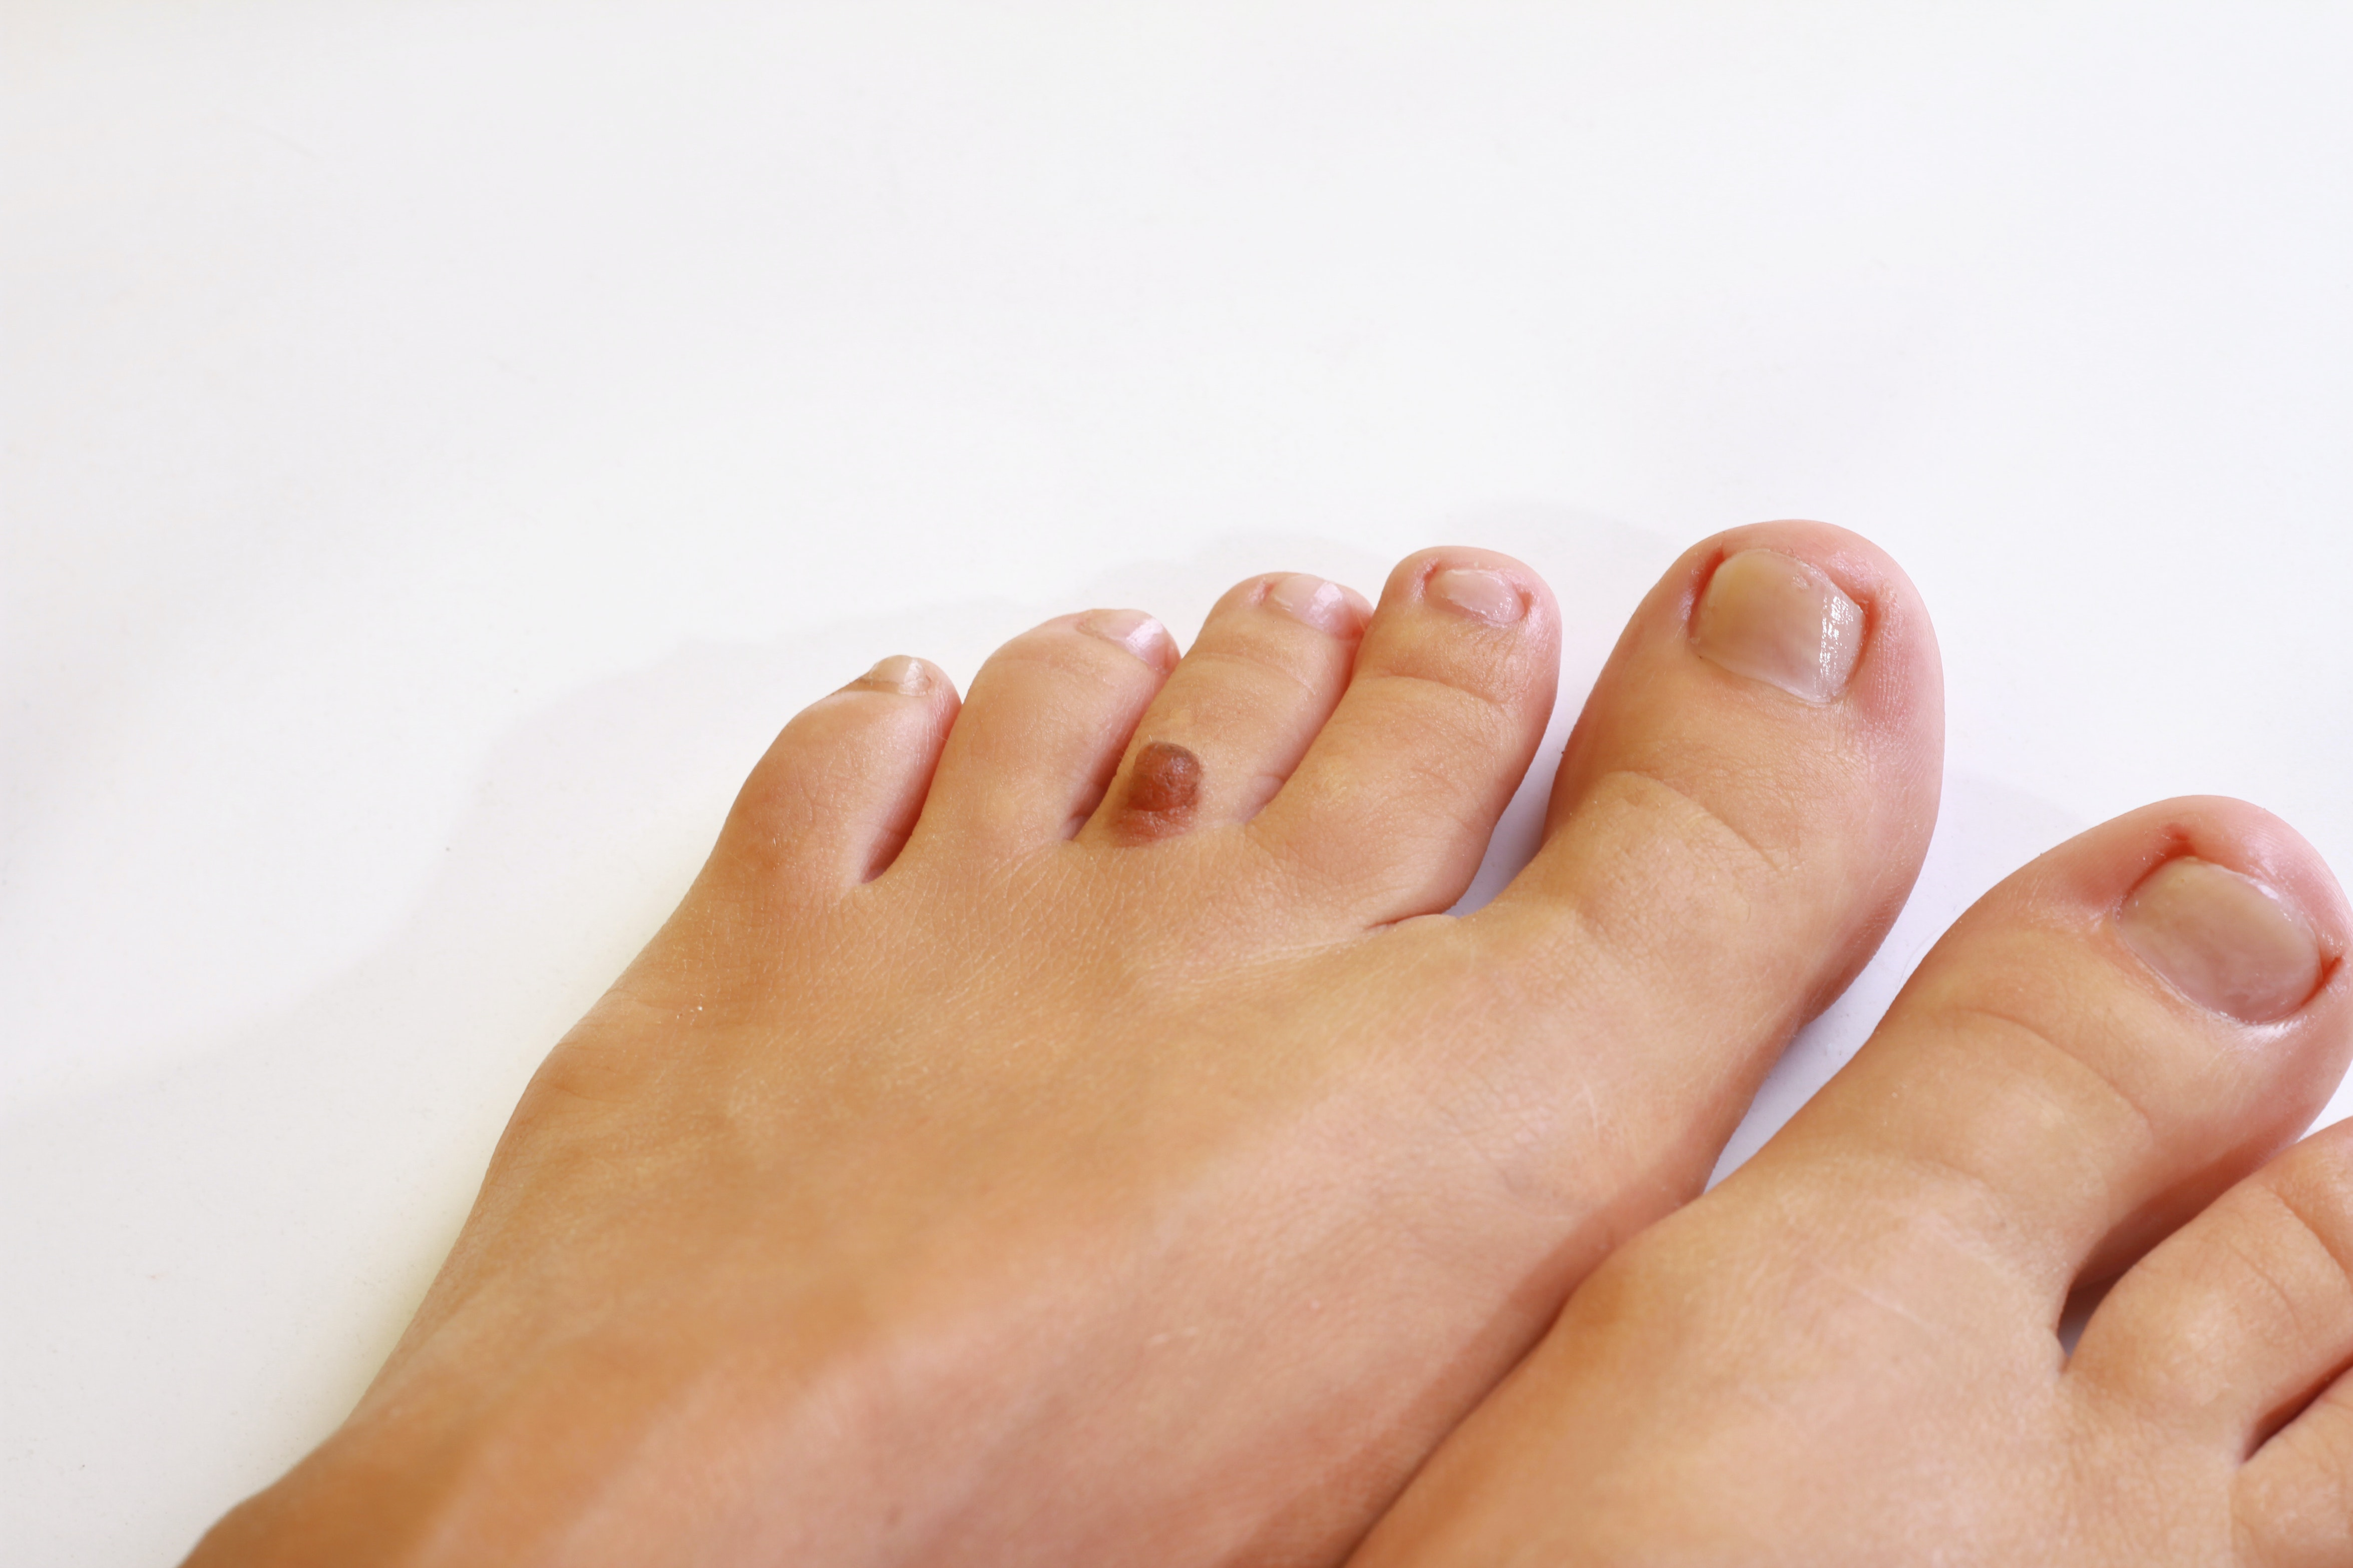 An image depicting a person suffering from black or brown foot bump symptoms